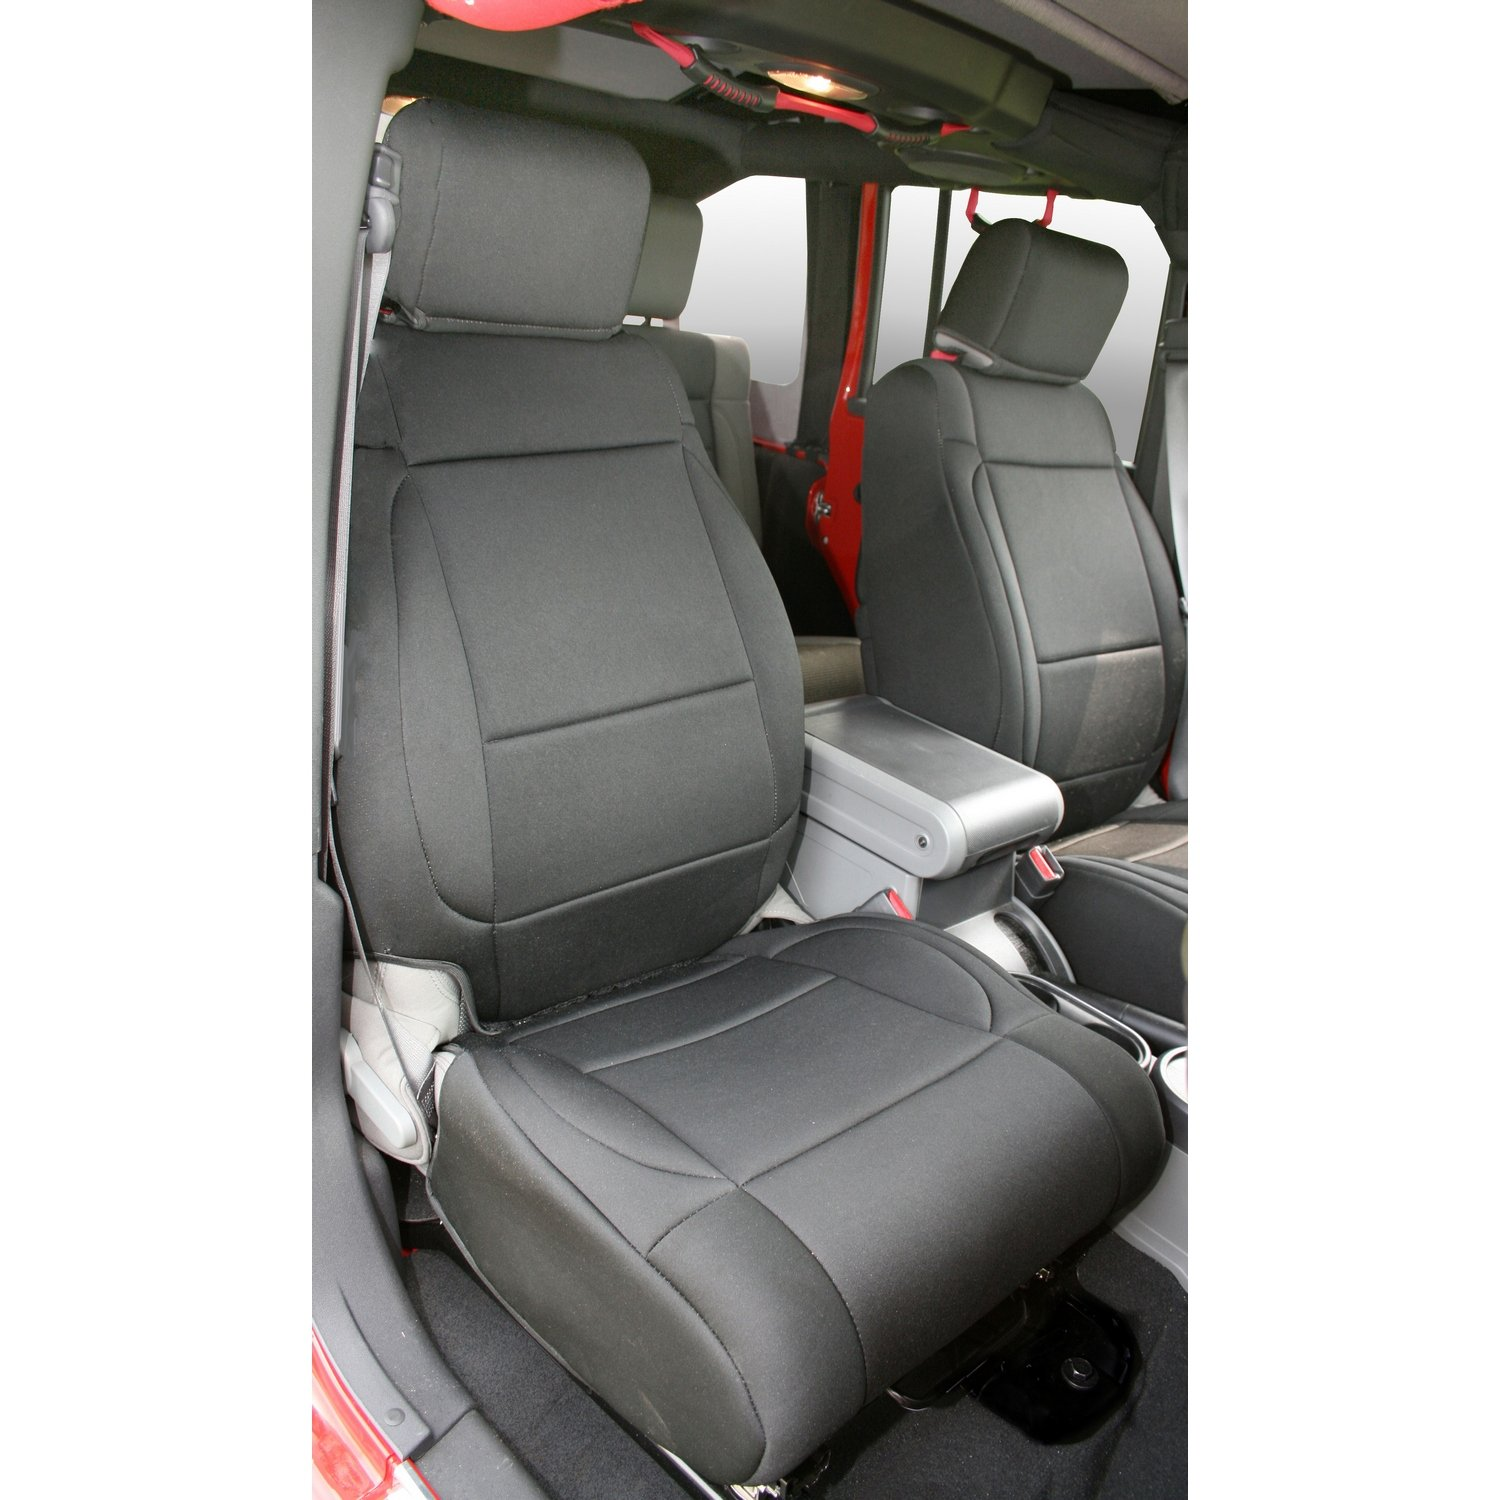 Rugged Ridge 13214.01 Black Custom Neoprene Front Seat Cover - Pair